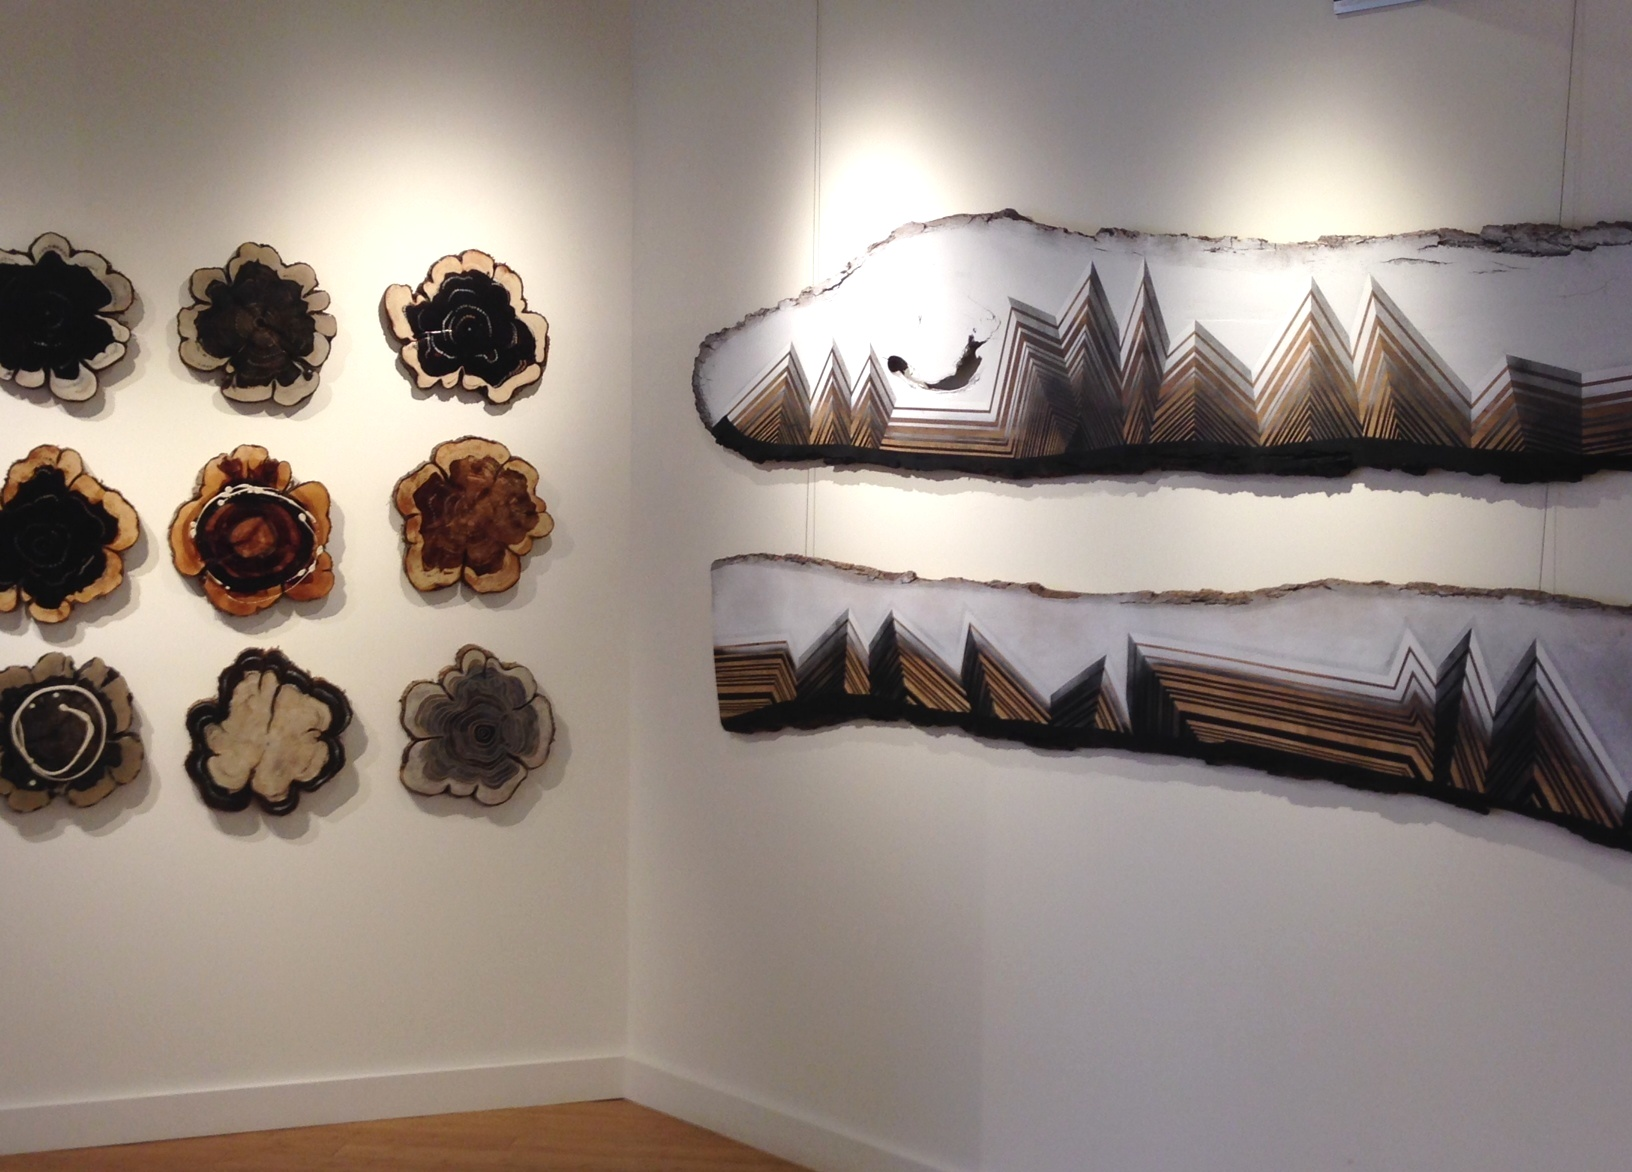 Julia Mori's storm damaged trees were featured in Natural Geometry during Westfest 2014